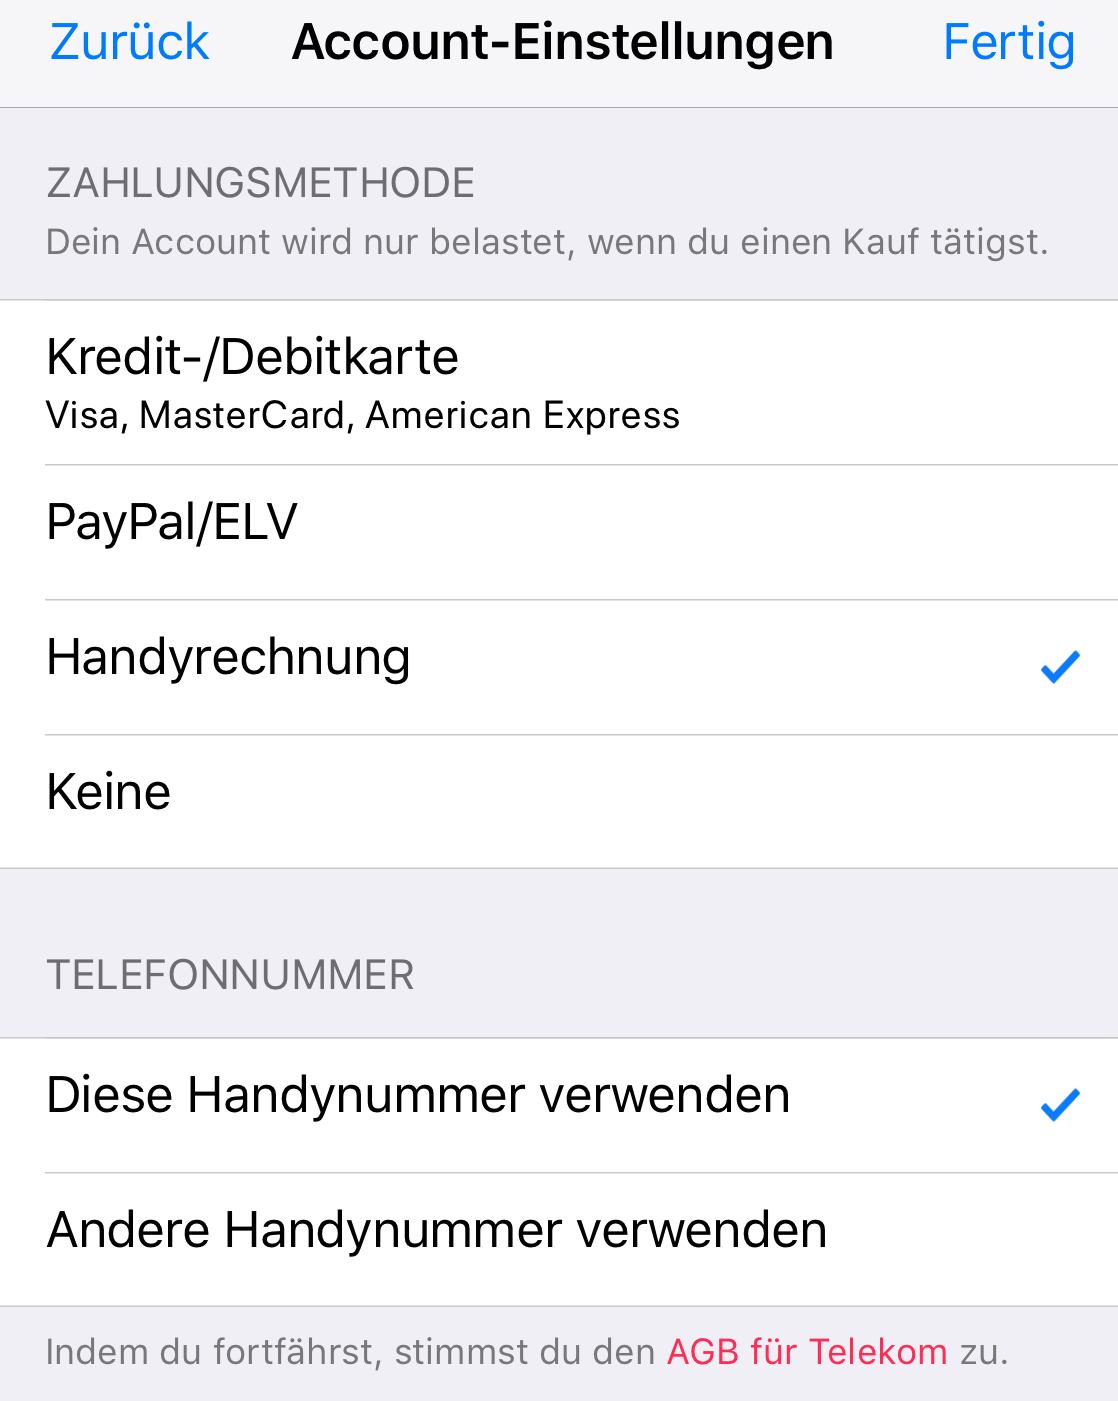 telekom bezahlung im apple app store jetzt auch via handy rechnung engadget deutschland. Black Bedroom Furniture Sets. Home Design Ideas